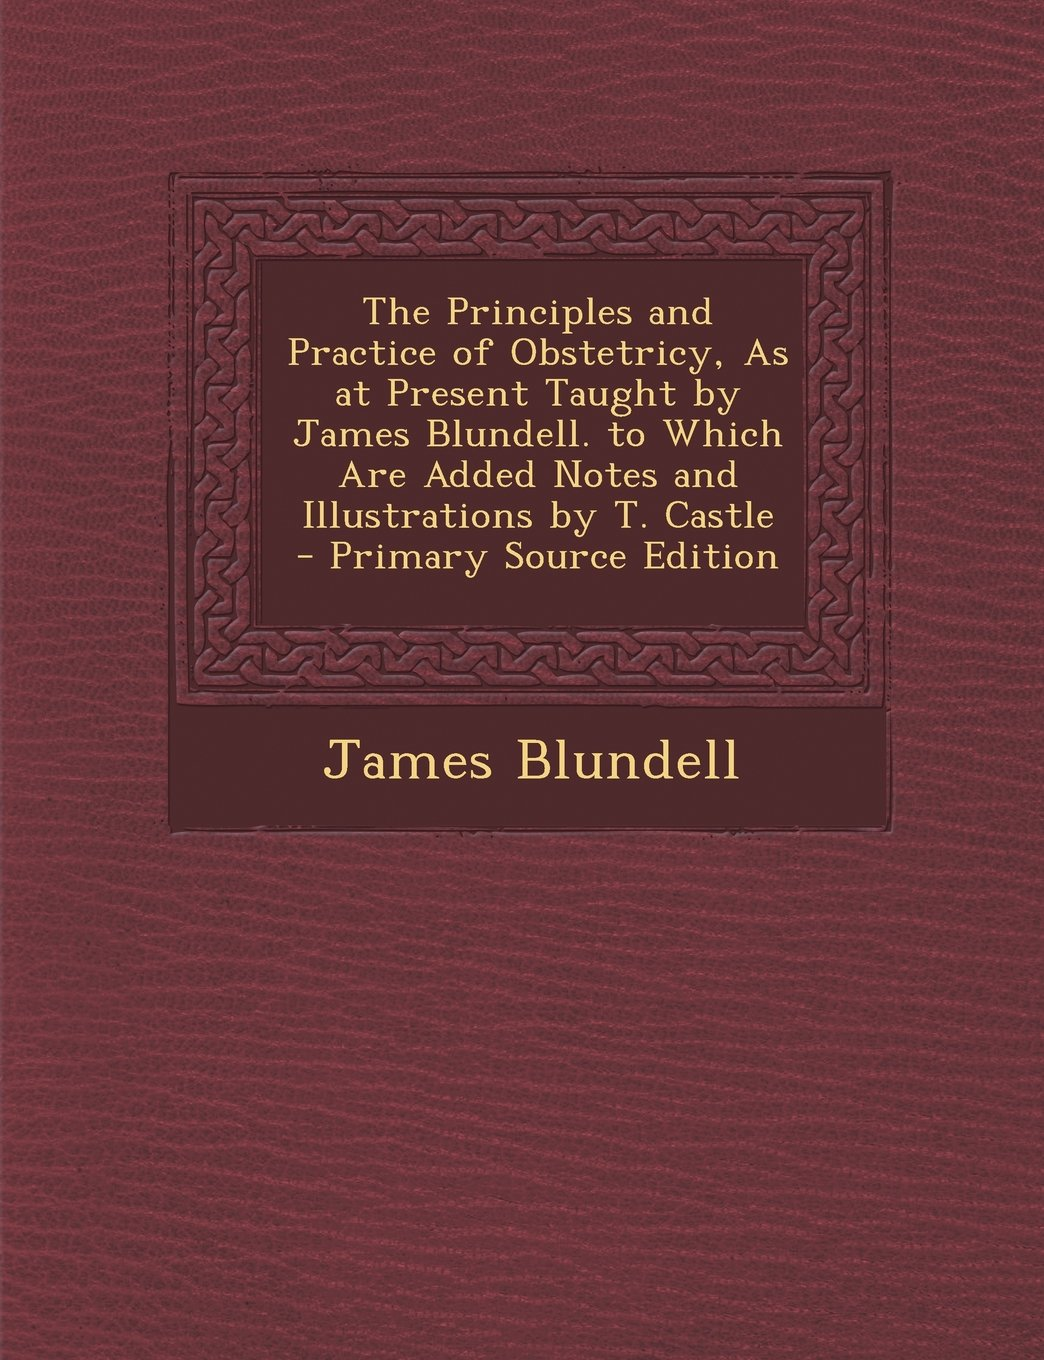 The Principles and Practice of Obstetricy, as at Present Taught by James Blundell. to Which Are Added Notes and Illustrations by T. Castle - Primary S PDF